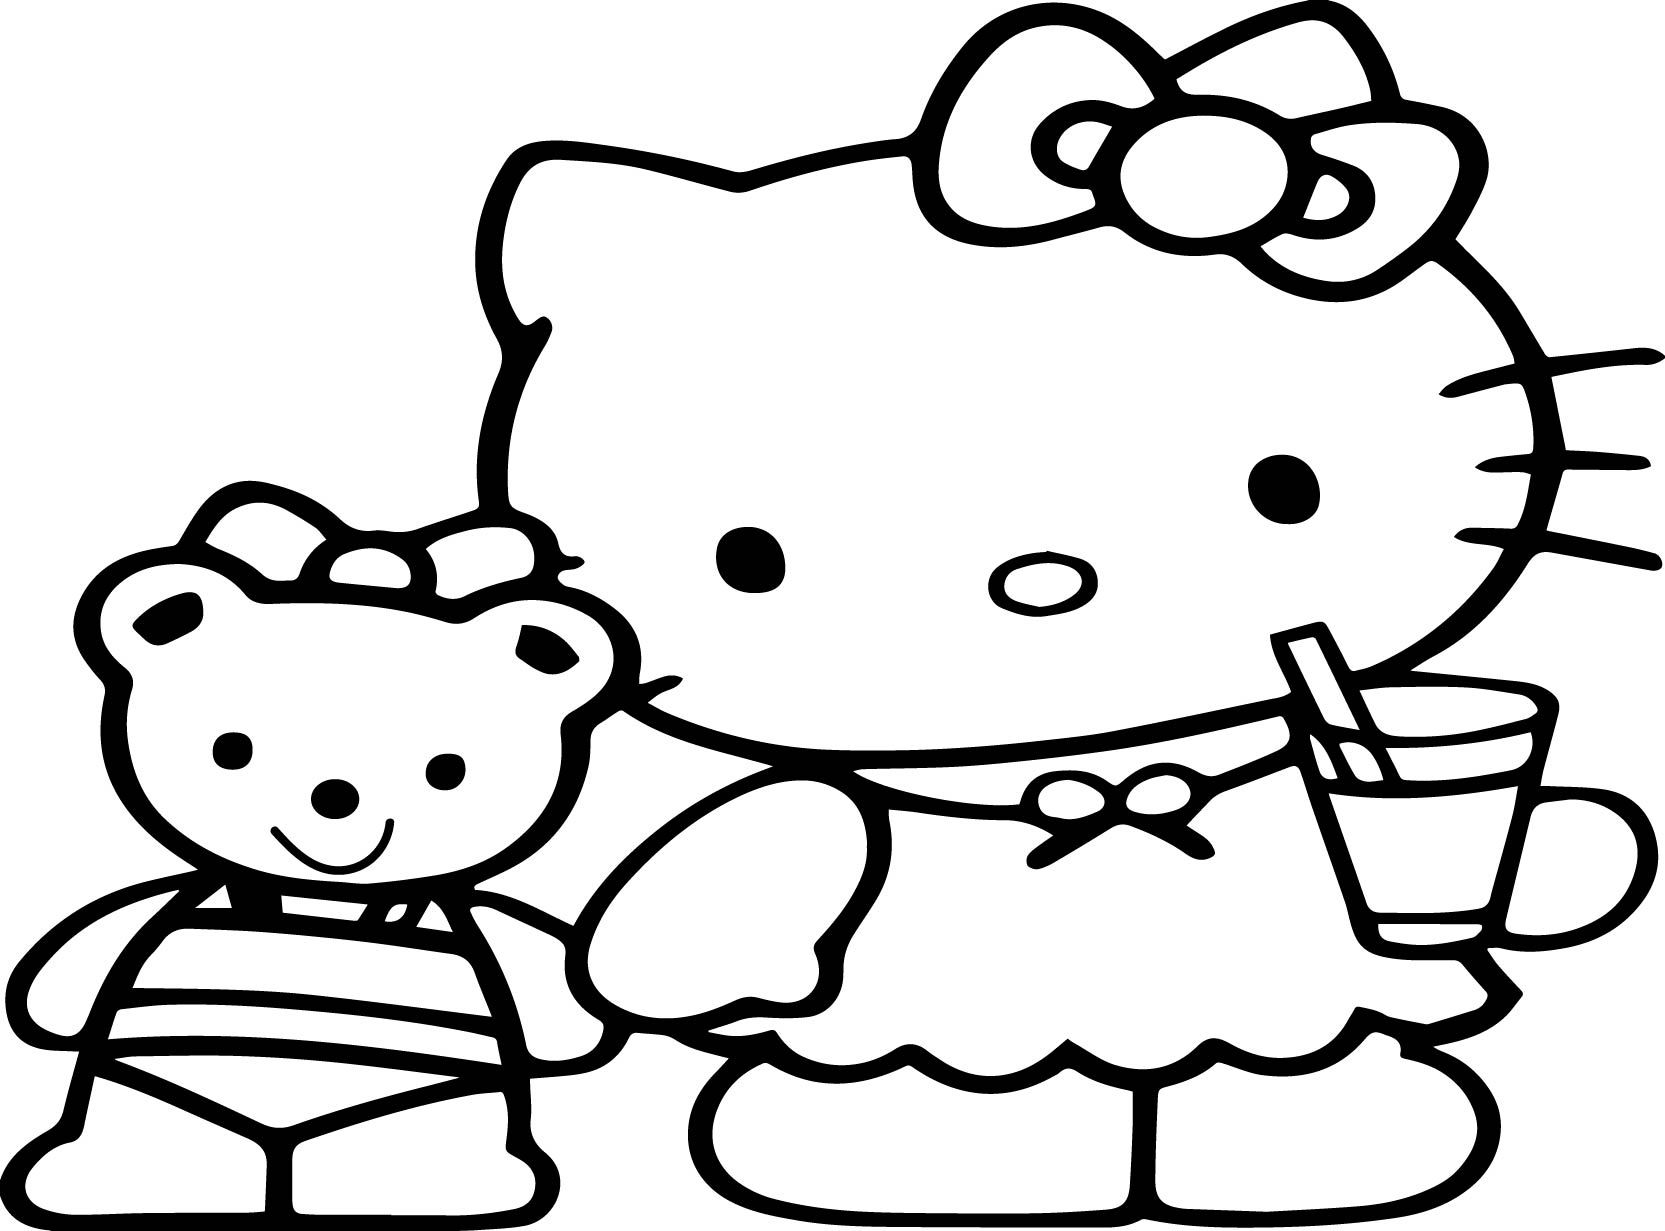 Cool Cute Cartoon Hello Kitty Coloring Page